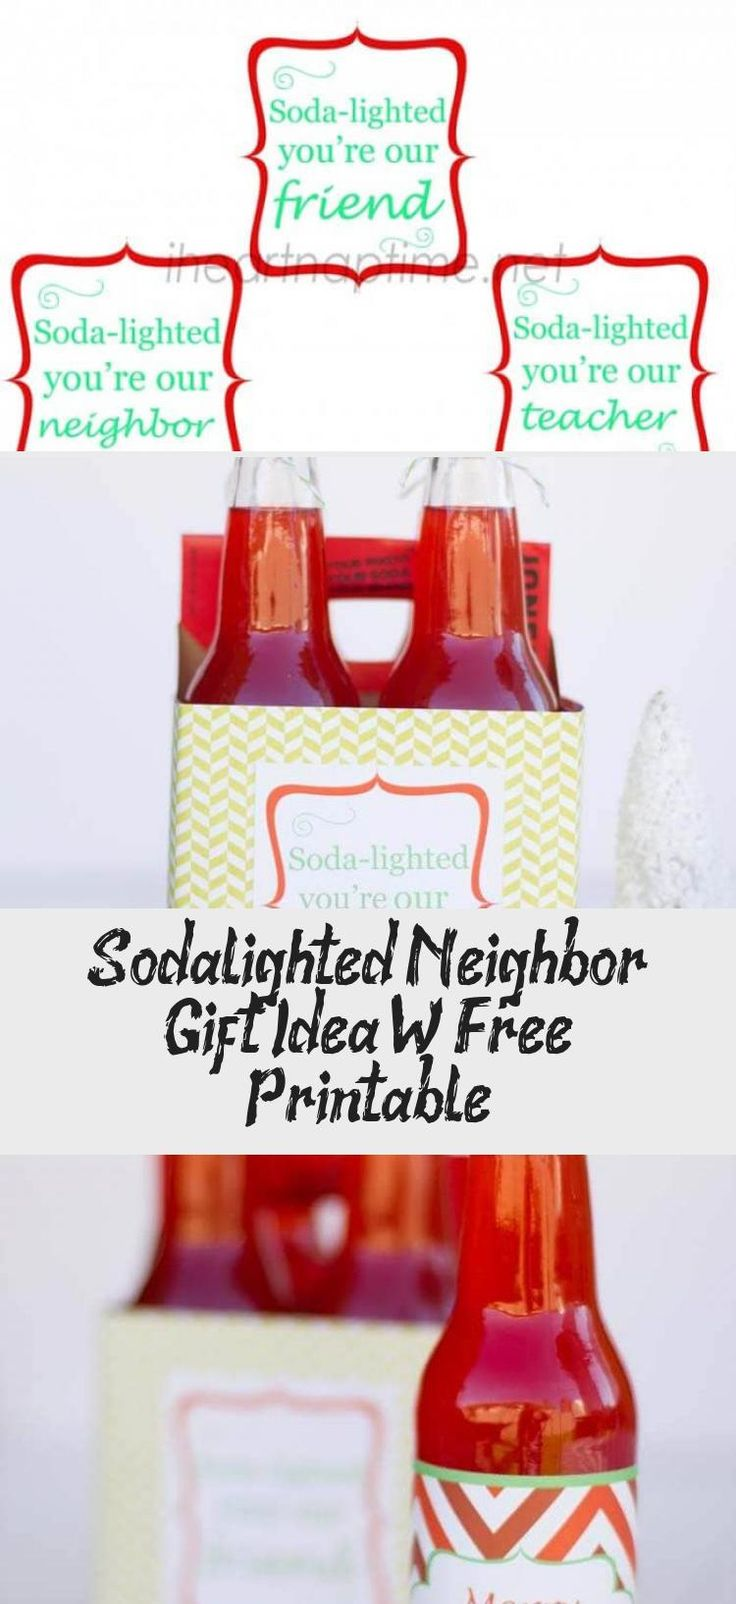 Sodalighted Neighbor Gift Idea W/ Free Printable in 2020